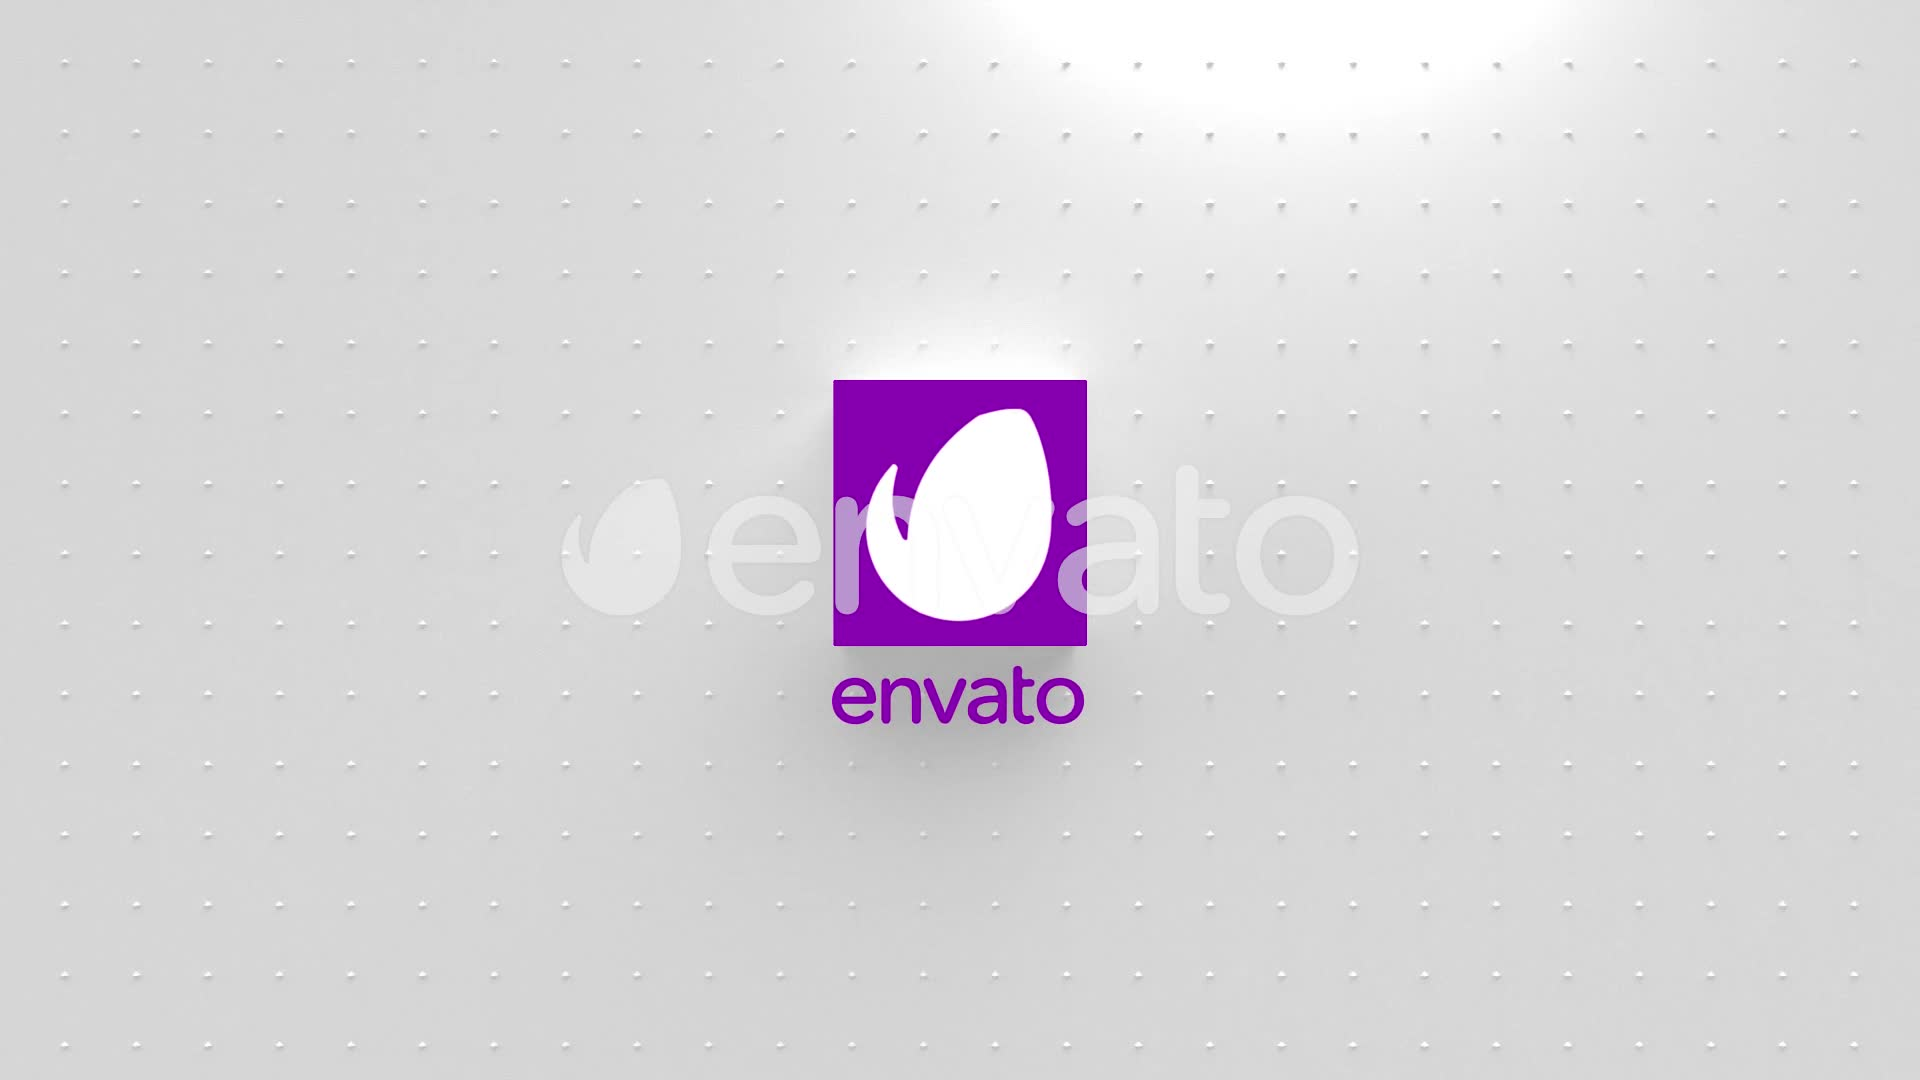 Logo Reveal Pack Videohive 28637113 After Effects Image 2